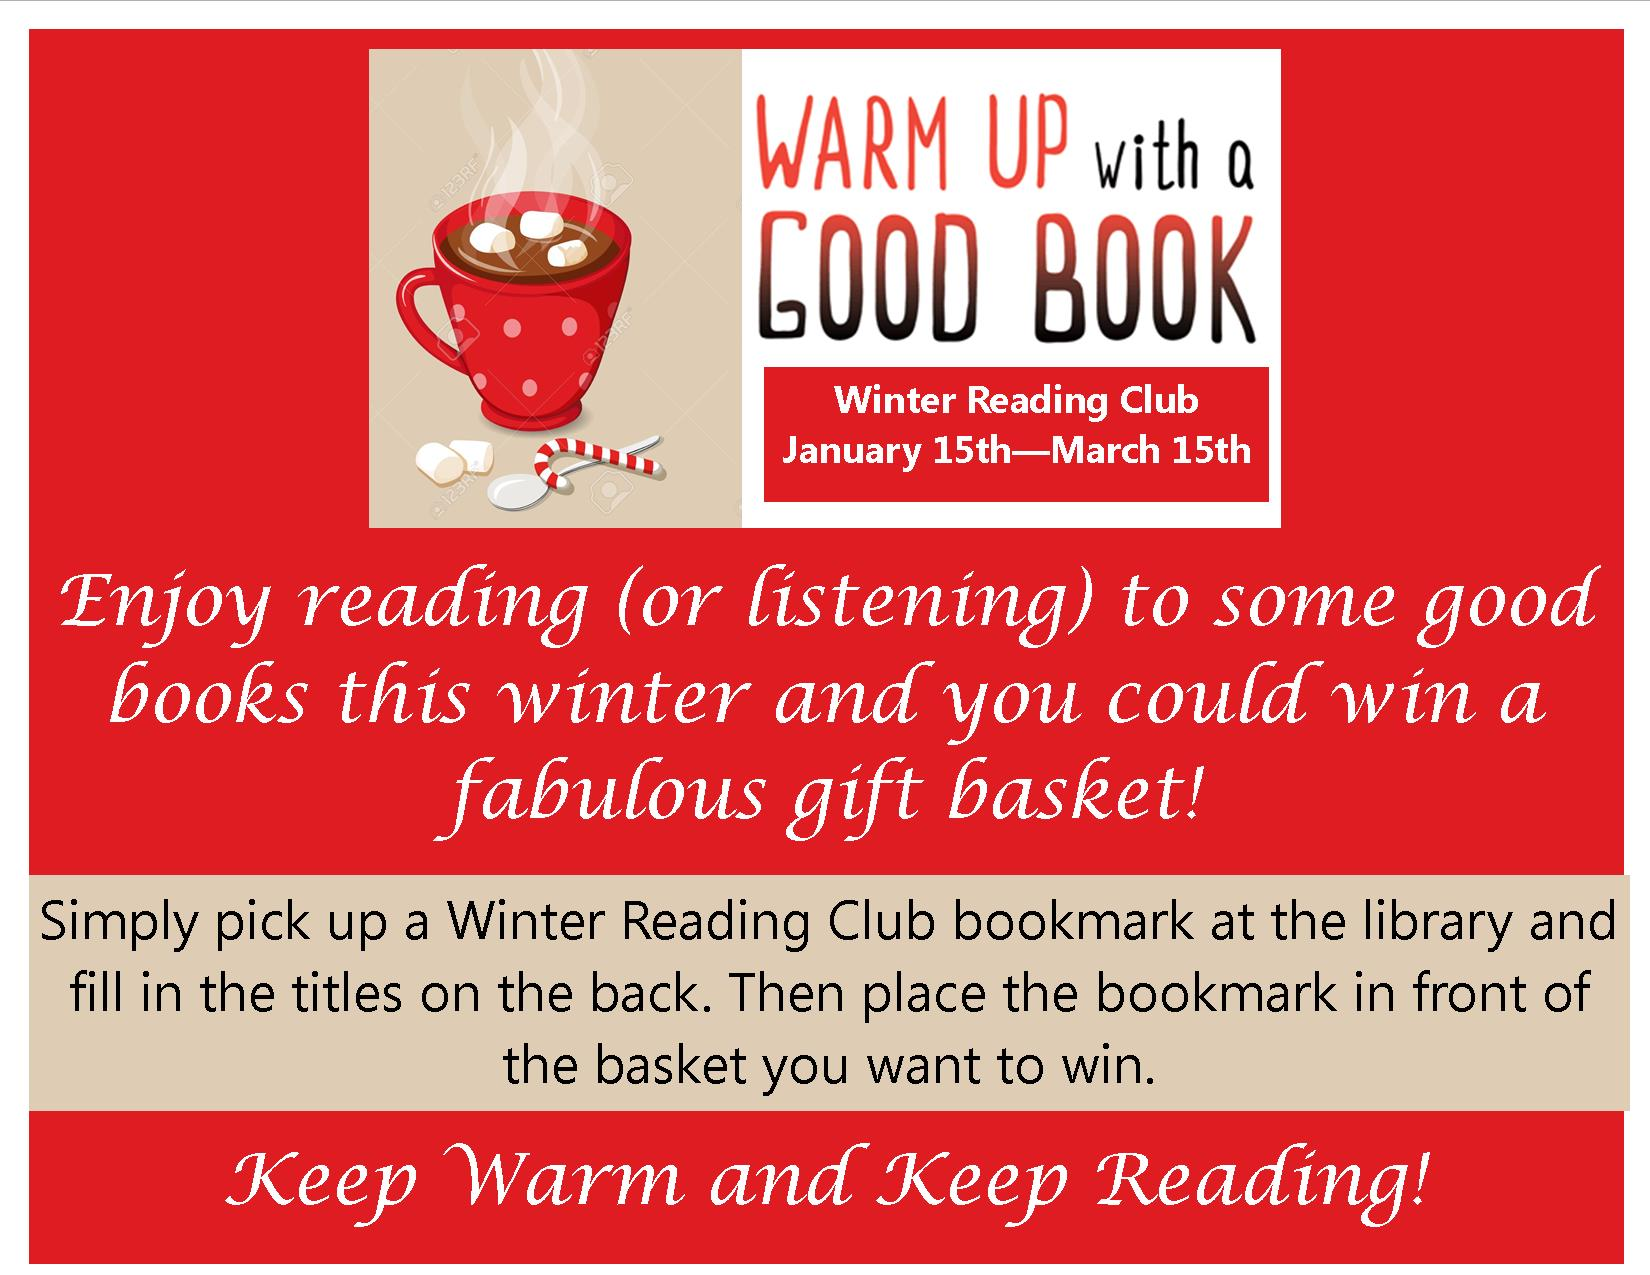 Winter Reading Club flyer jpg